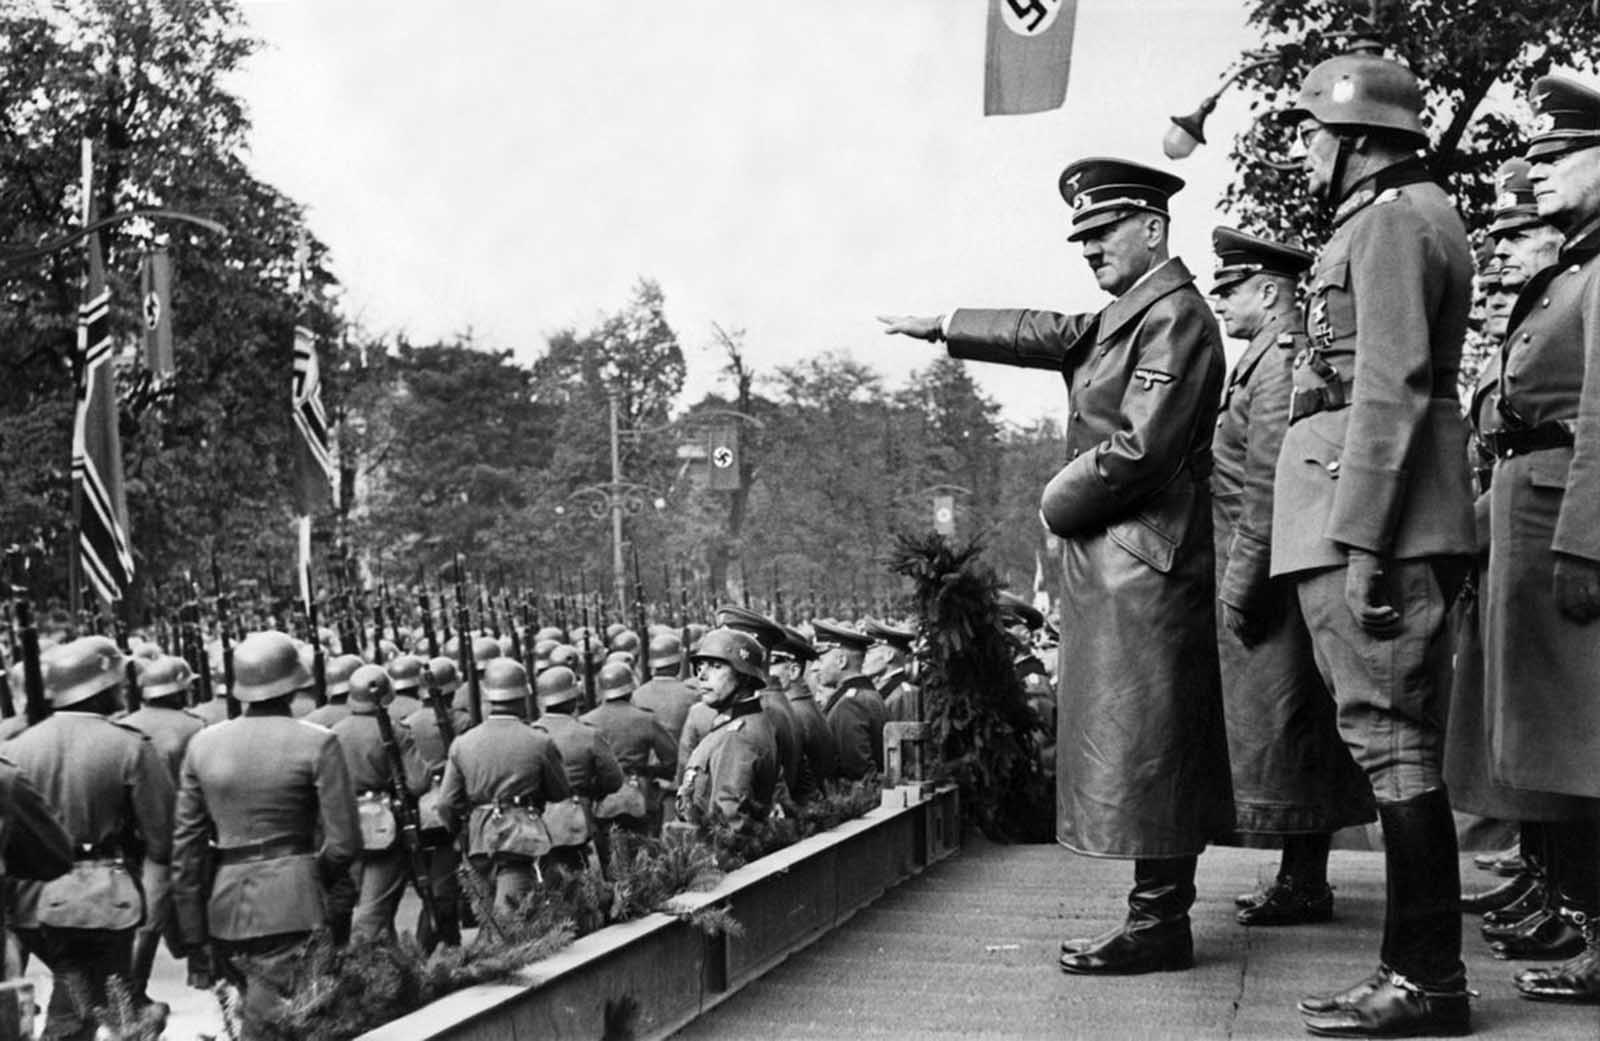 Adolf Hitler salutes parading troops of the German Wehrmacht in Warsaw, Poland, on October 5, 1939 after the German invasion. Behind Hitler are, from left to right: Colonel General Walther von Brauchitsch, Lieutenant General Friedrich von Cochenhausen, Colonel General Gerd von Rundstedt, and Colonel General Wilhelm Keitel.